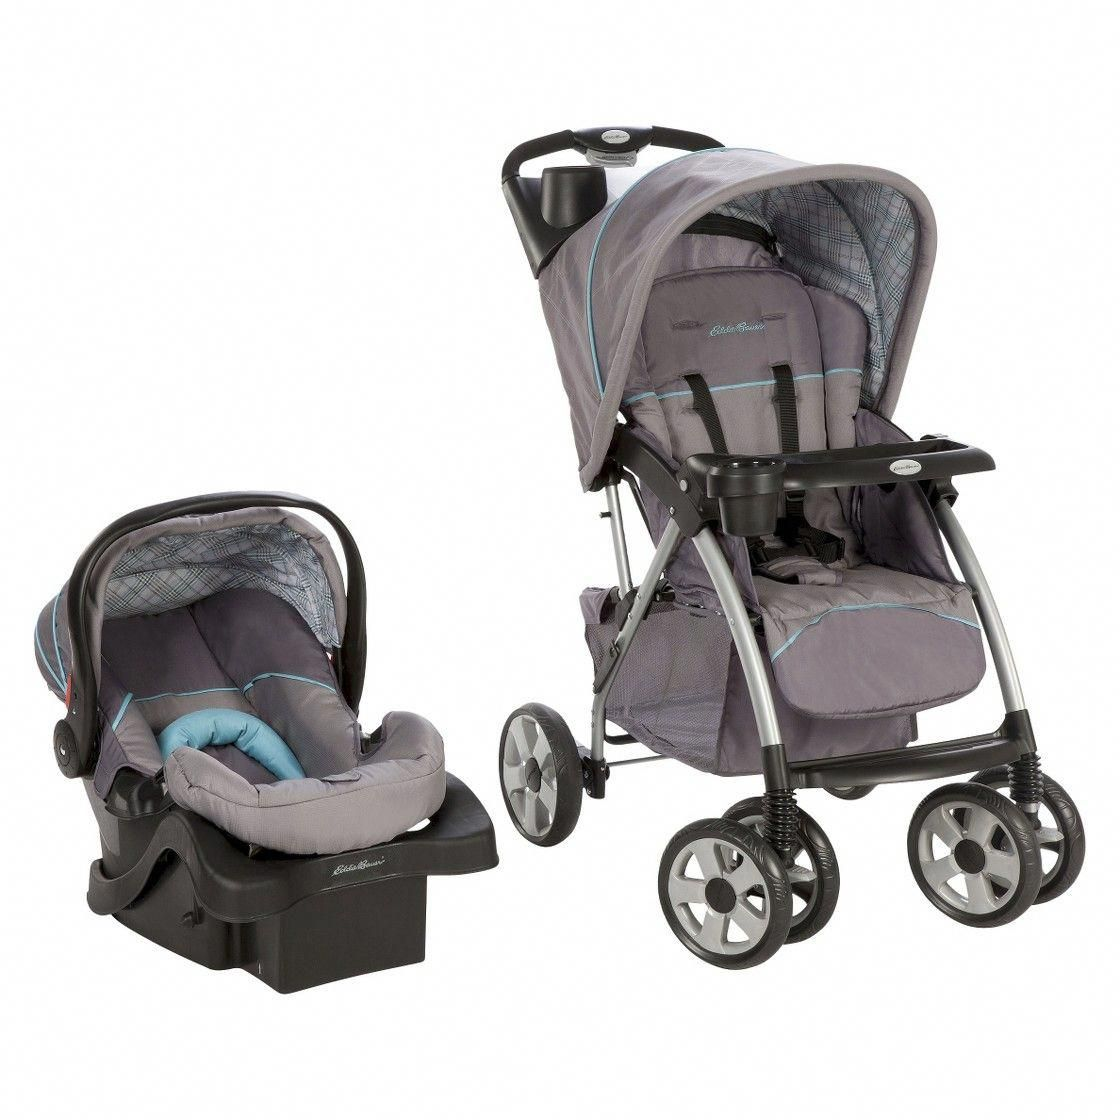 Baby Travel system, Stroller, New baby products